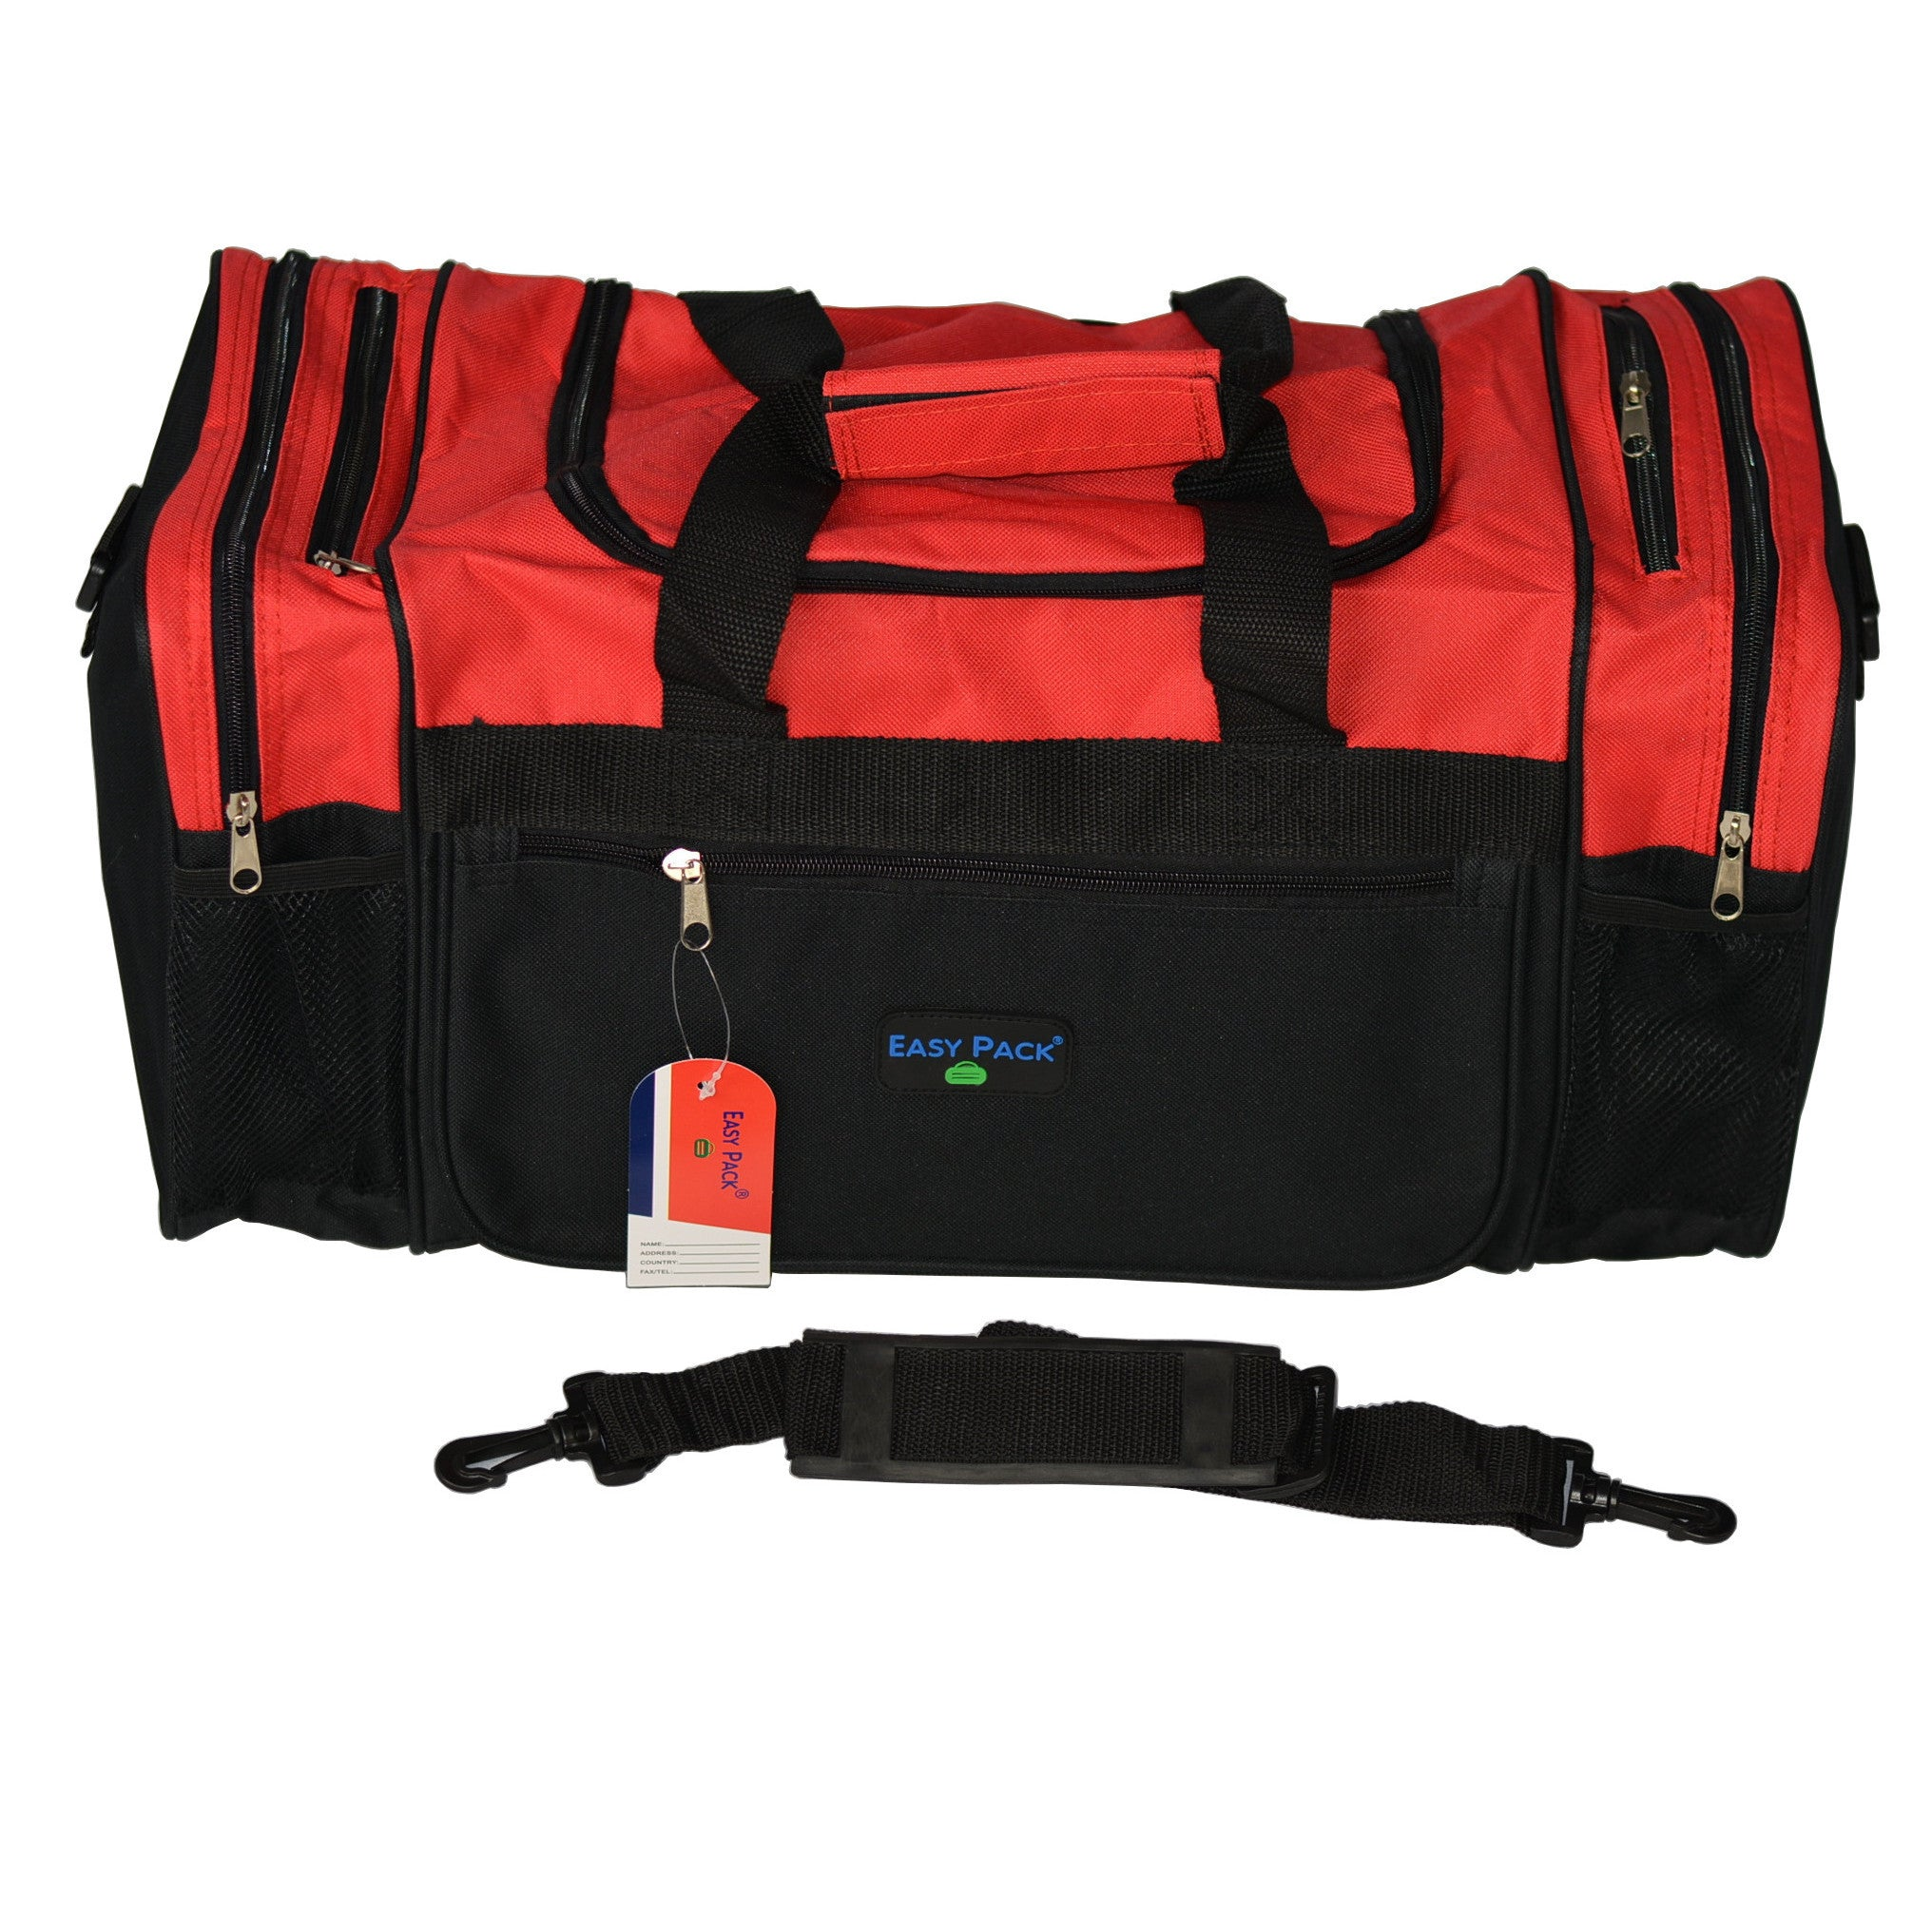 Easy Pack Sports Carry On Travel Duffle Gym Bag with Adjustable ... 7776929c5294a